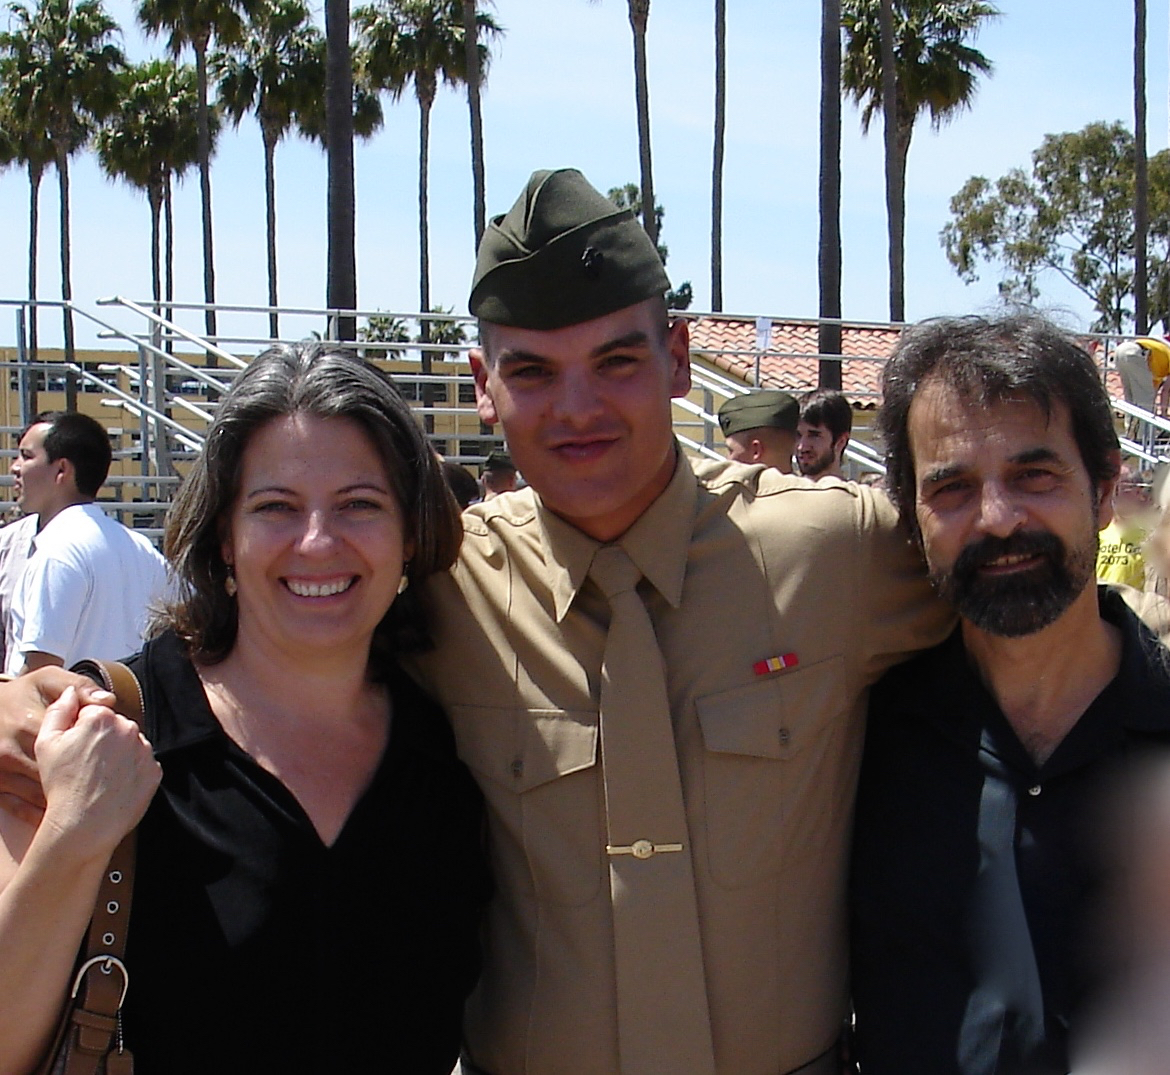 Jane Whitfield and her husband, Salvatore Abbate, with their son, Matthew Abbate after his graduation from Marine Corps recruit training. (Photo courtesy of Jane Whitfield)